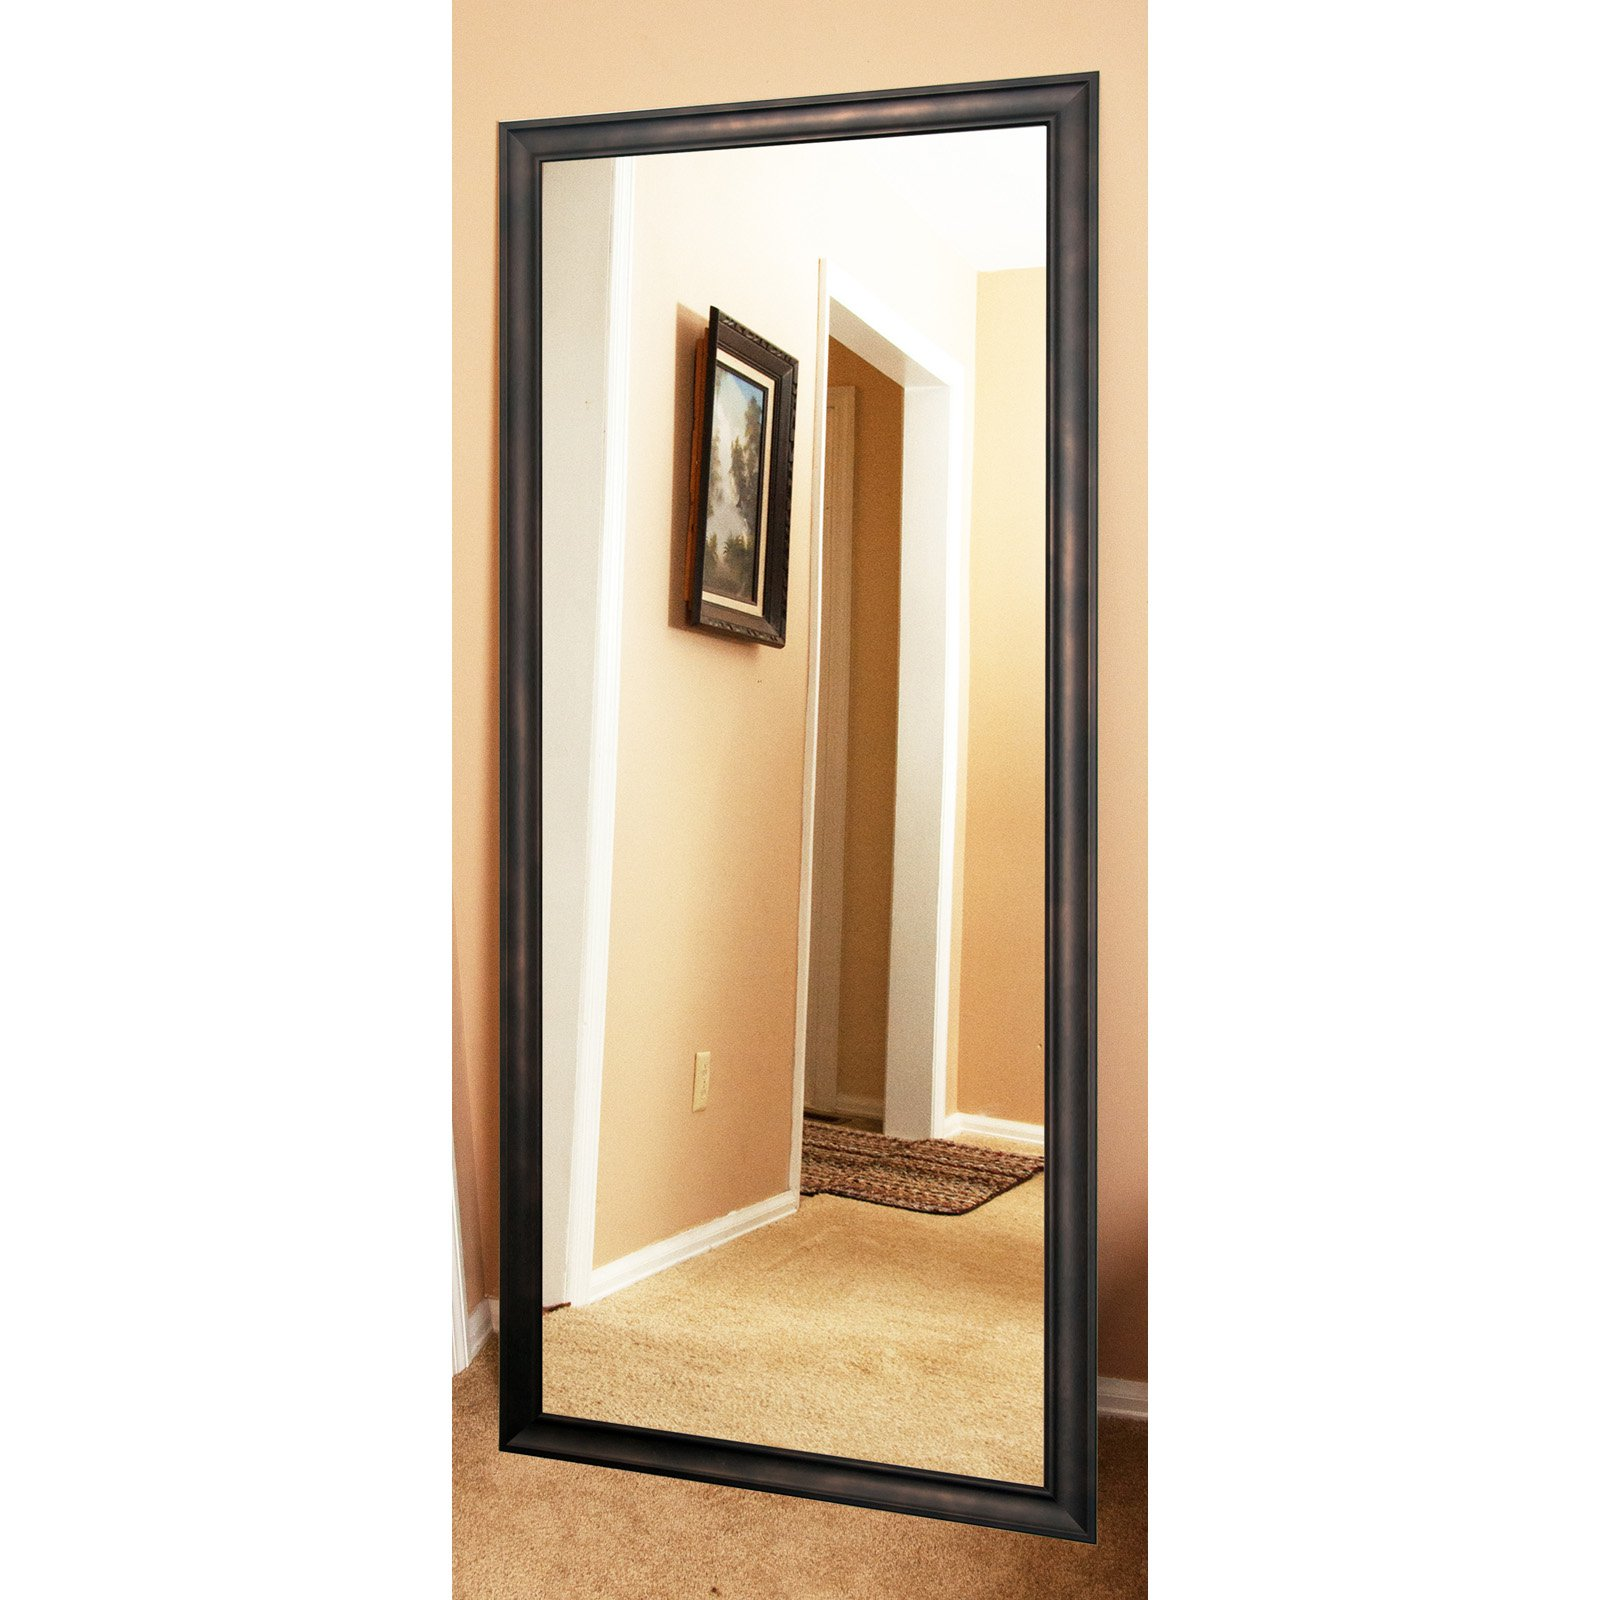 BrandtWorks American Accent Clouded Leaning Floor Mirror by BrandtWorks